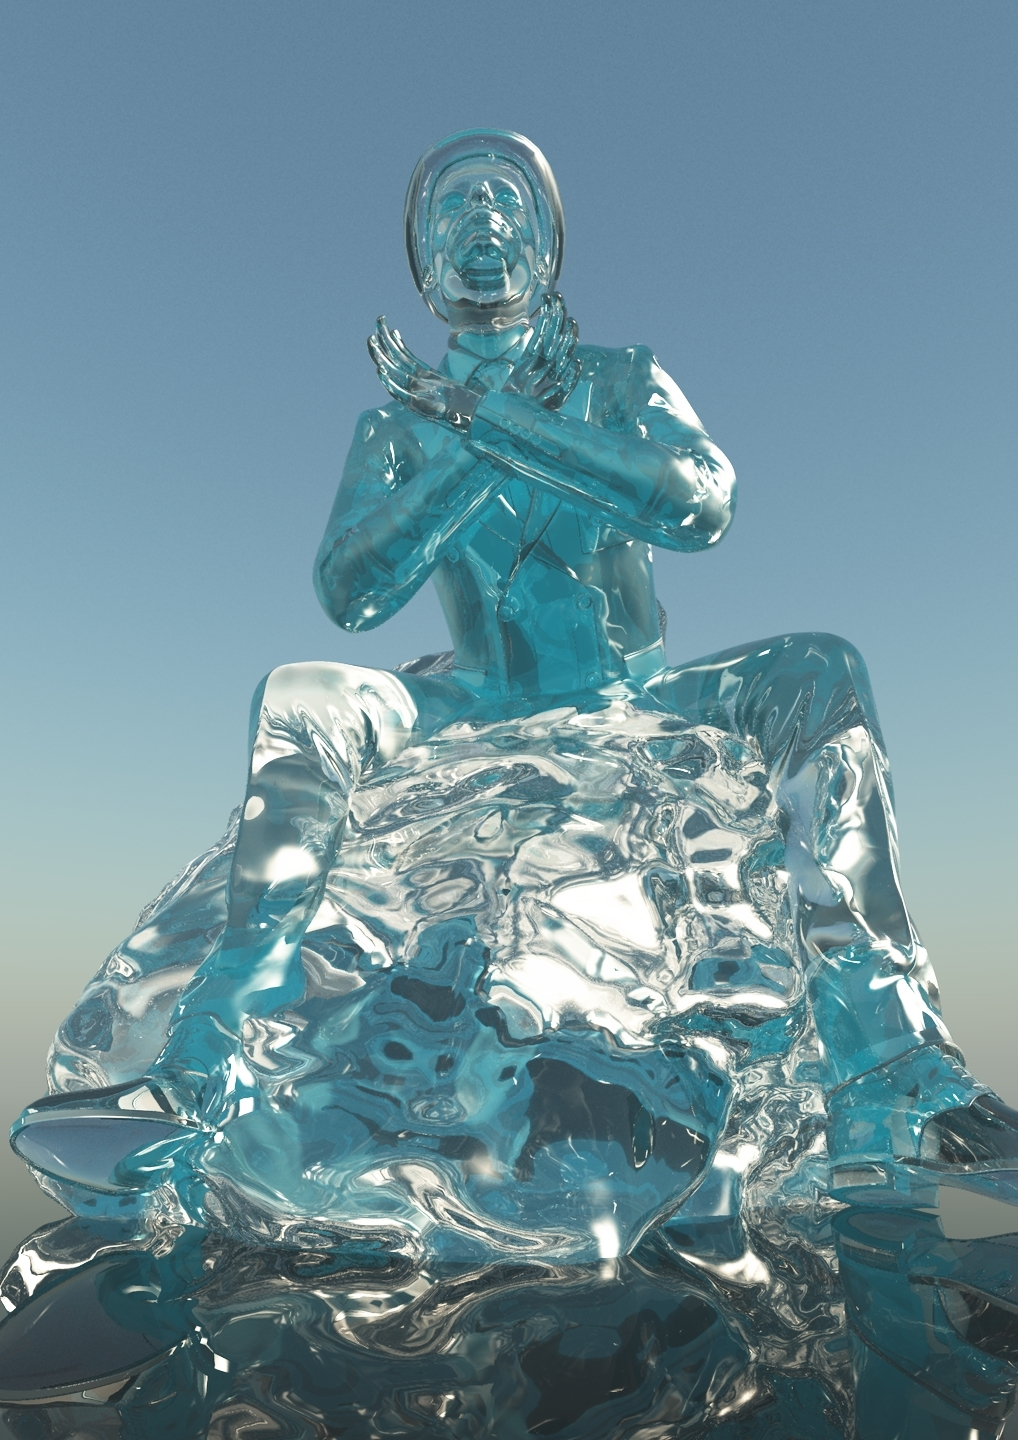 The Ice Man by rustic01